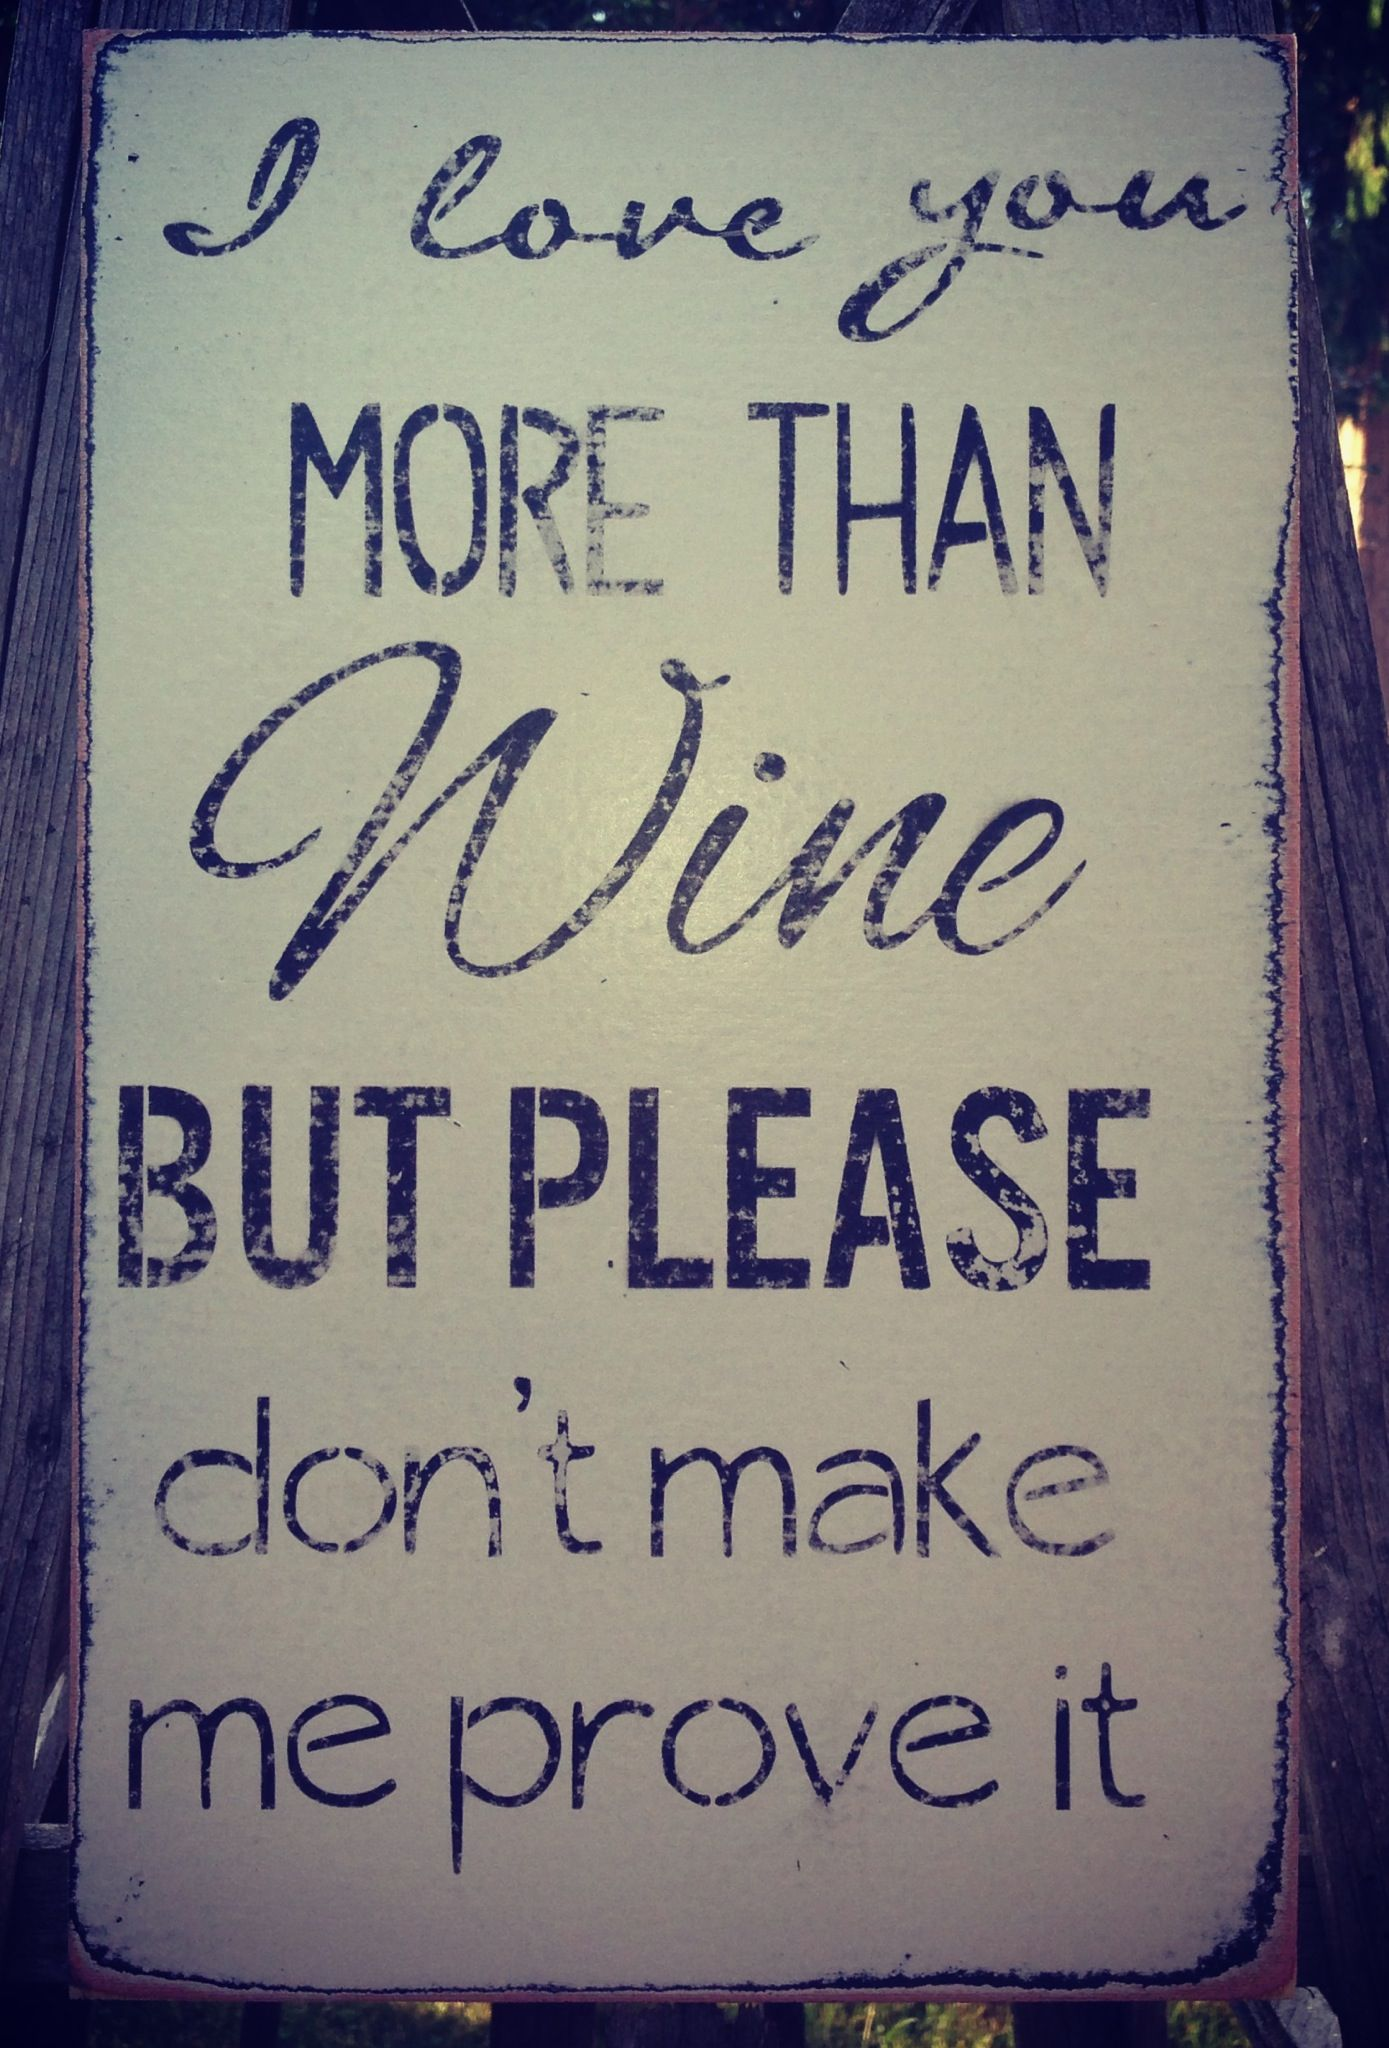 Pin By Tripplanner Mama On Pink Marmalade Designs Wine Quotes Wine Jokes Wine Quotes Funny